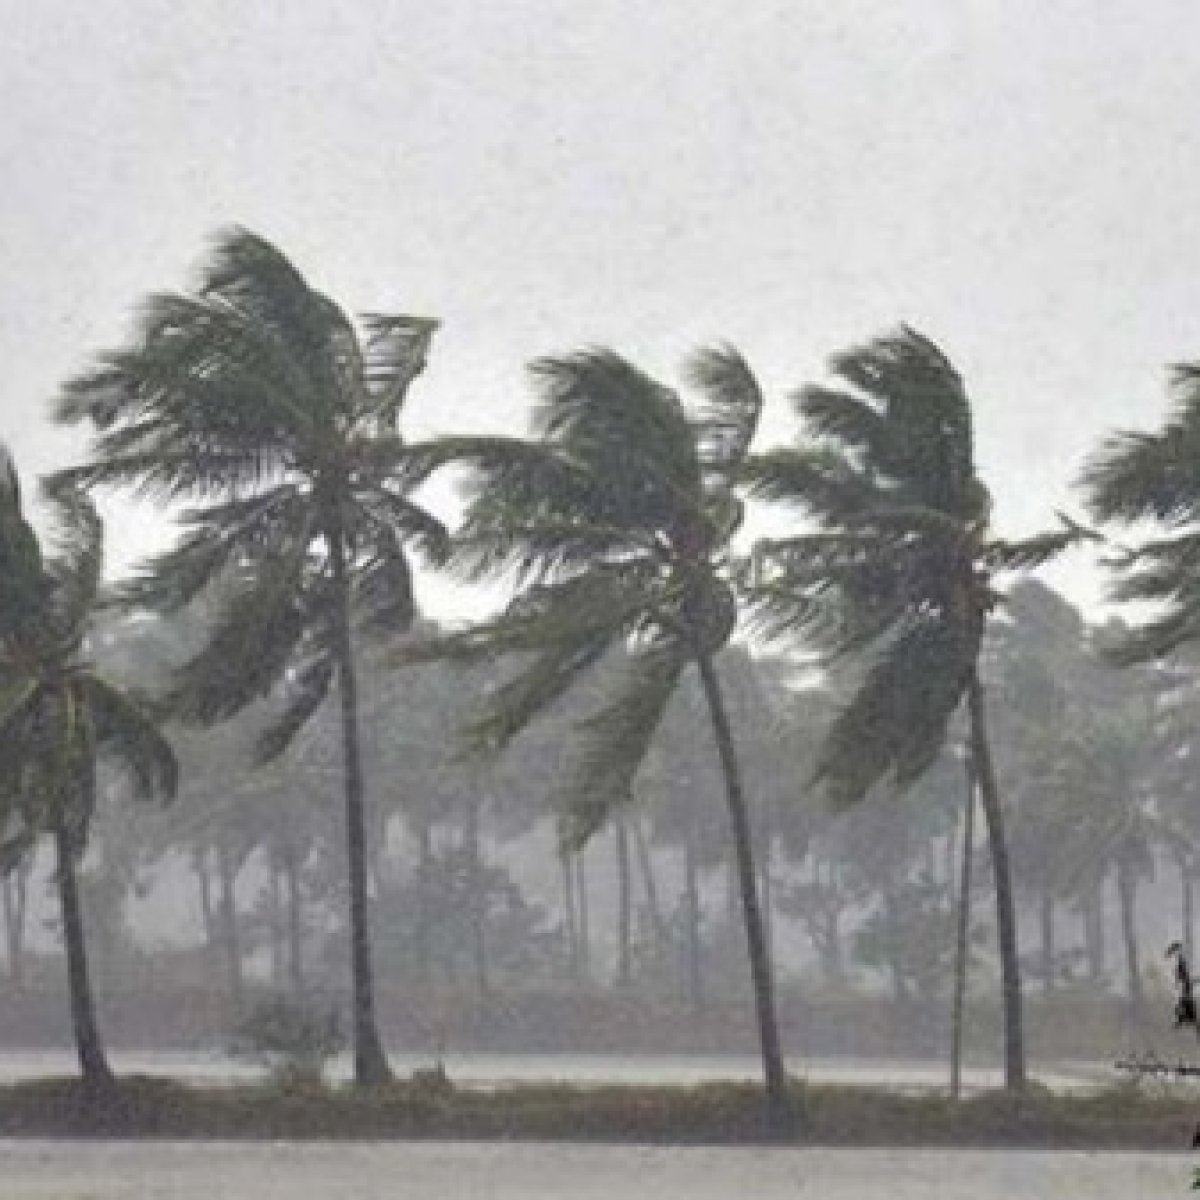 IMD issues red alert to coastal Maharashtra, Gujarat in wake of cyclonic storm in Arabian Sea